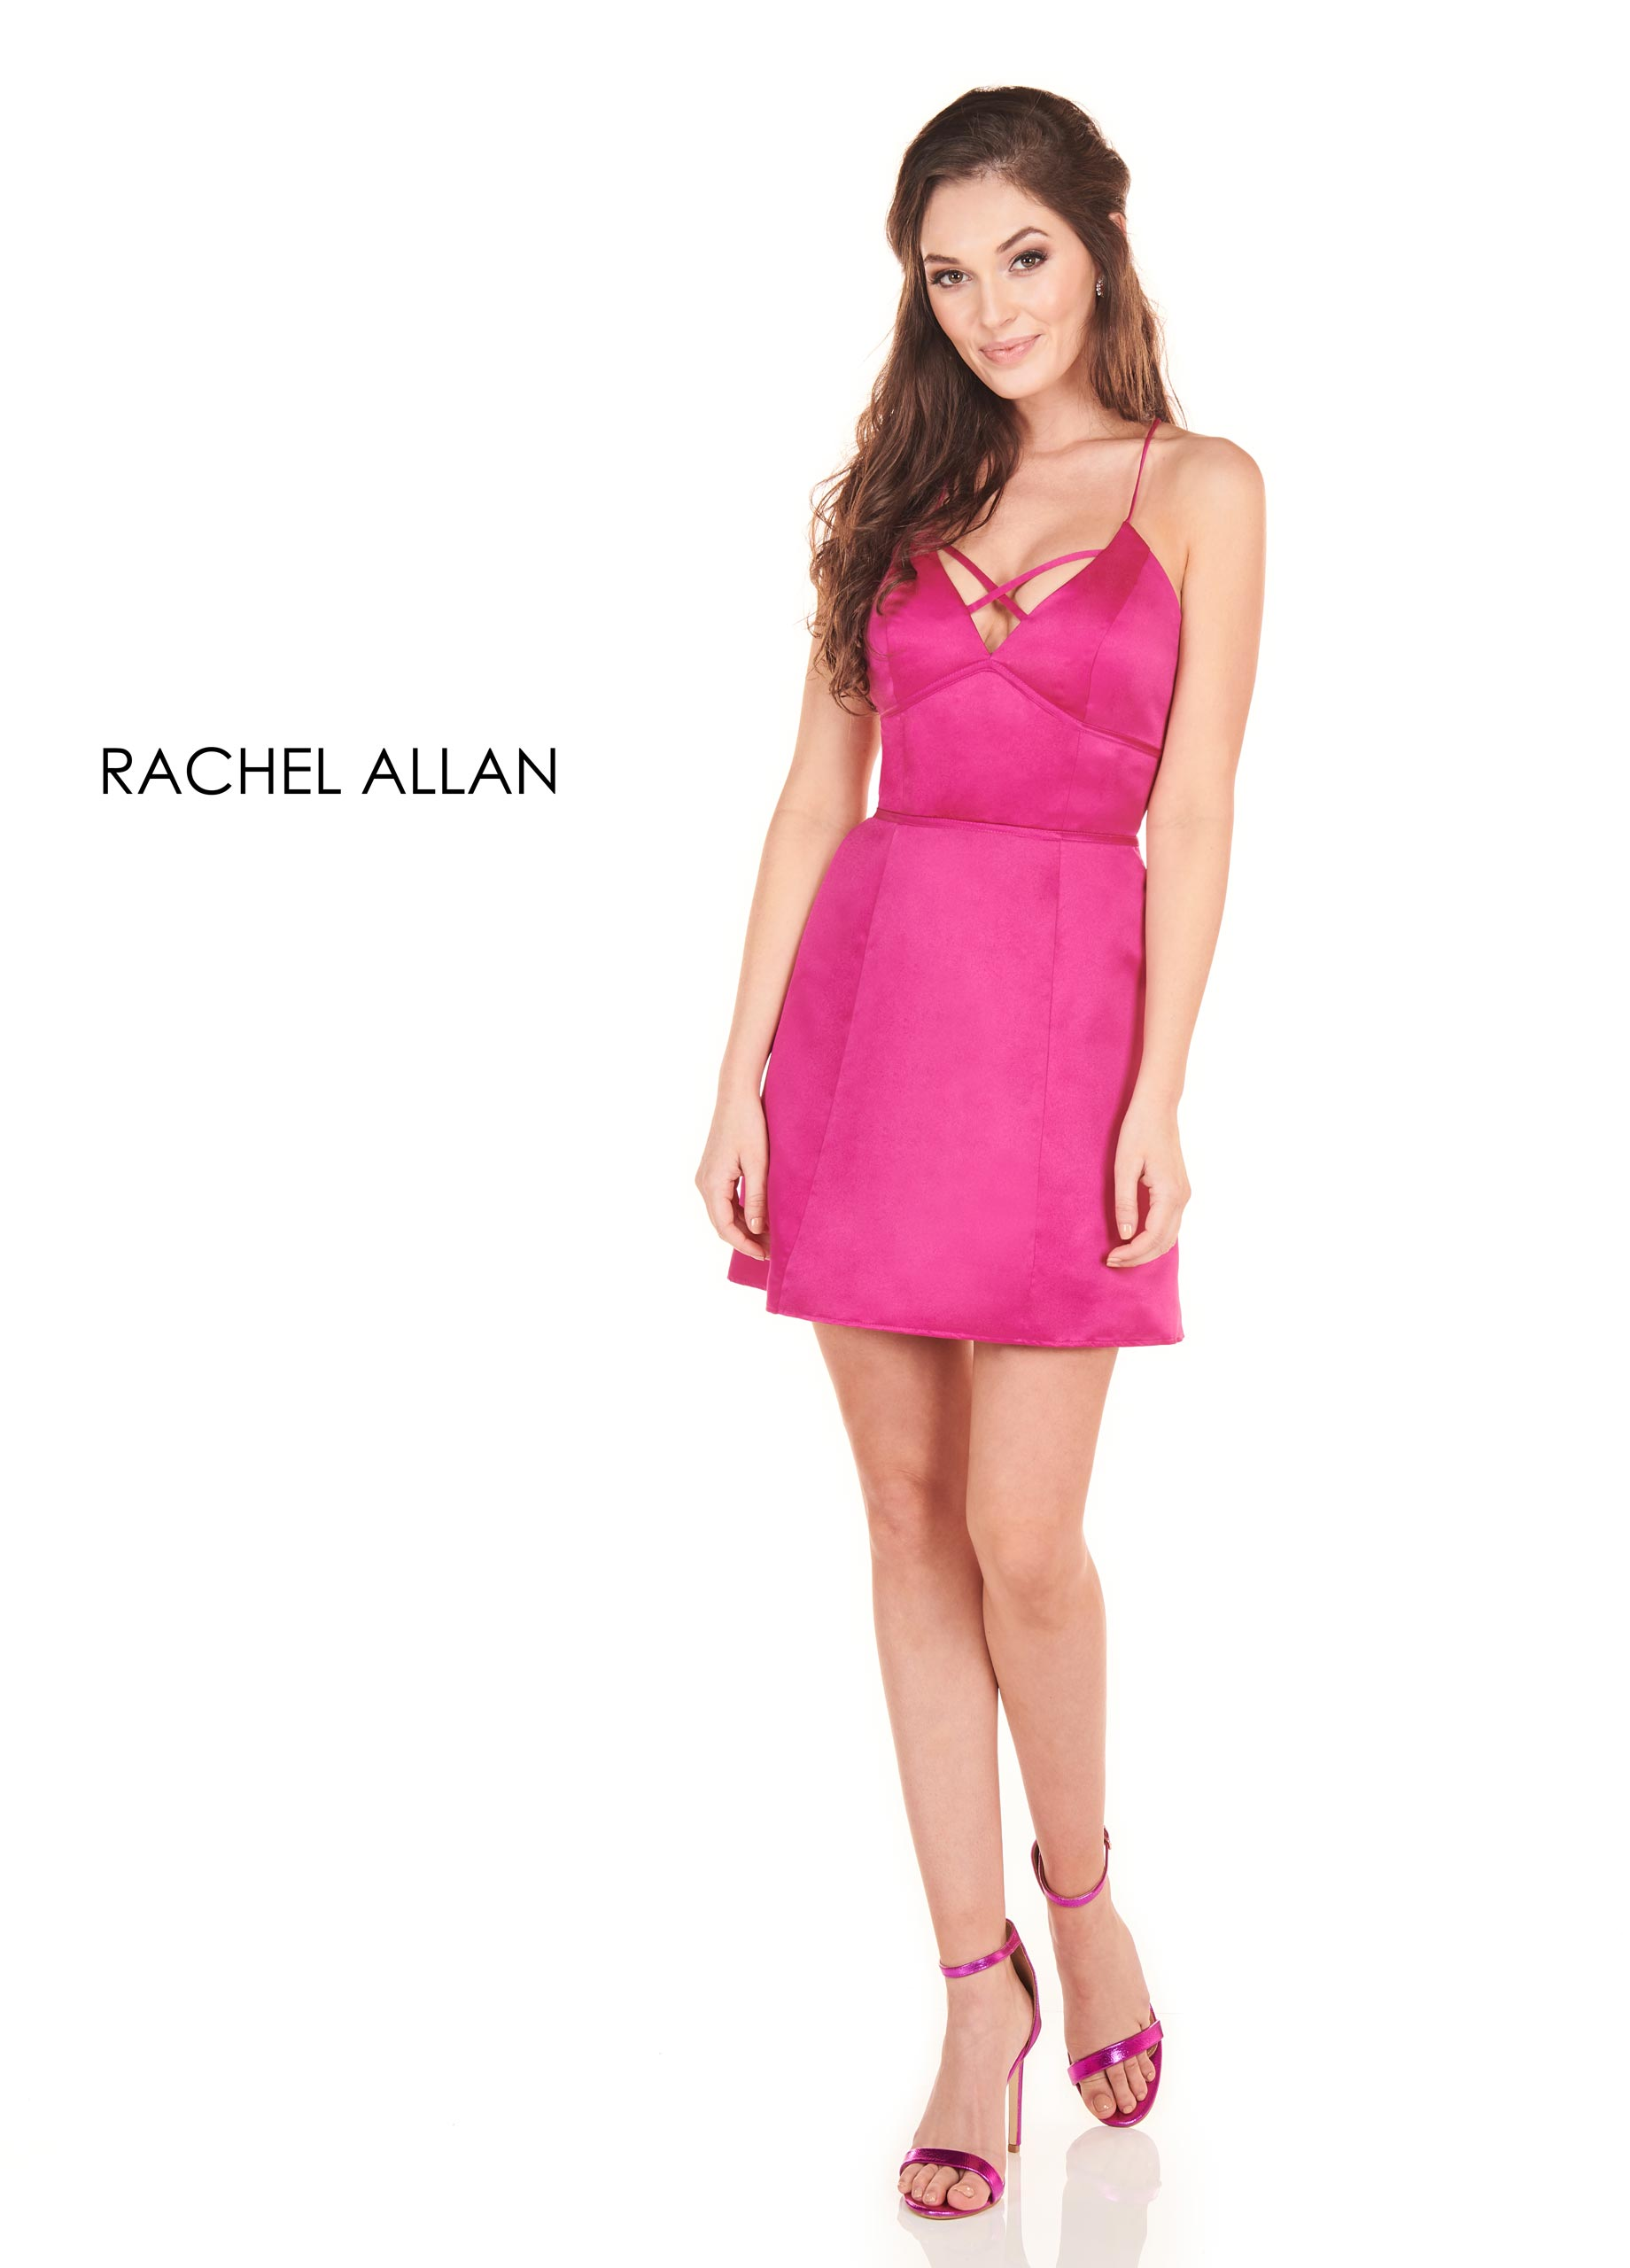 Strappy A-Line Homecoming Dresses in Fuchsia Color